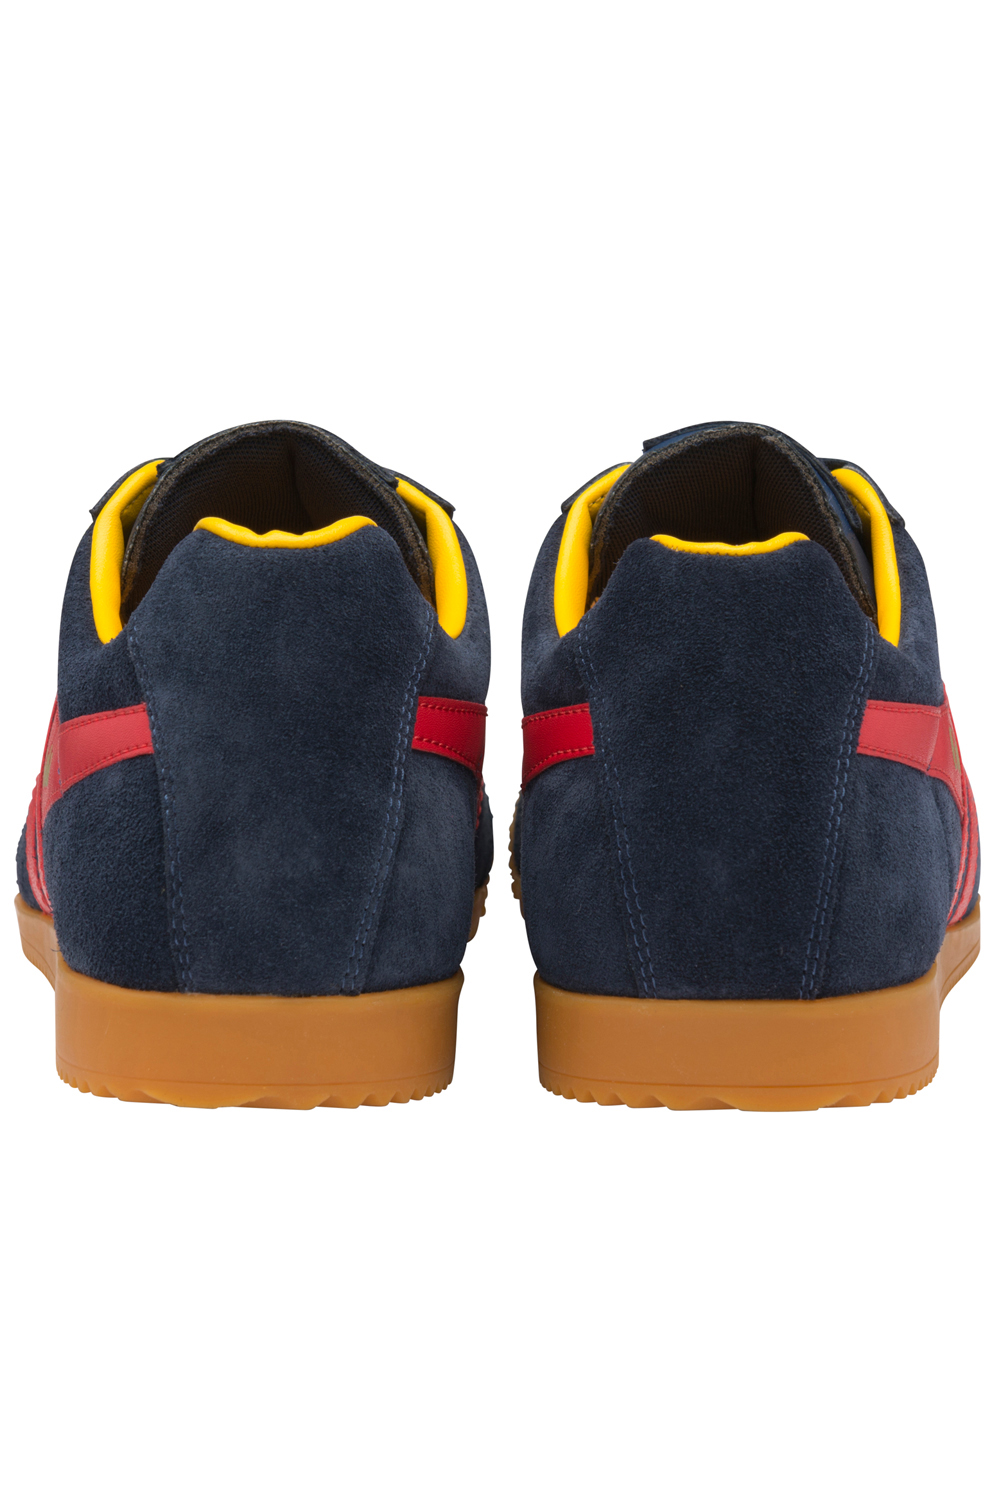 Gola-Harrier-Suede-Classic-Vintage-Lace-Up-Sneakers-Mens-Trainers-Low-Top-Shoes thumbnail 23